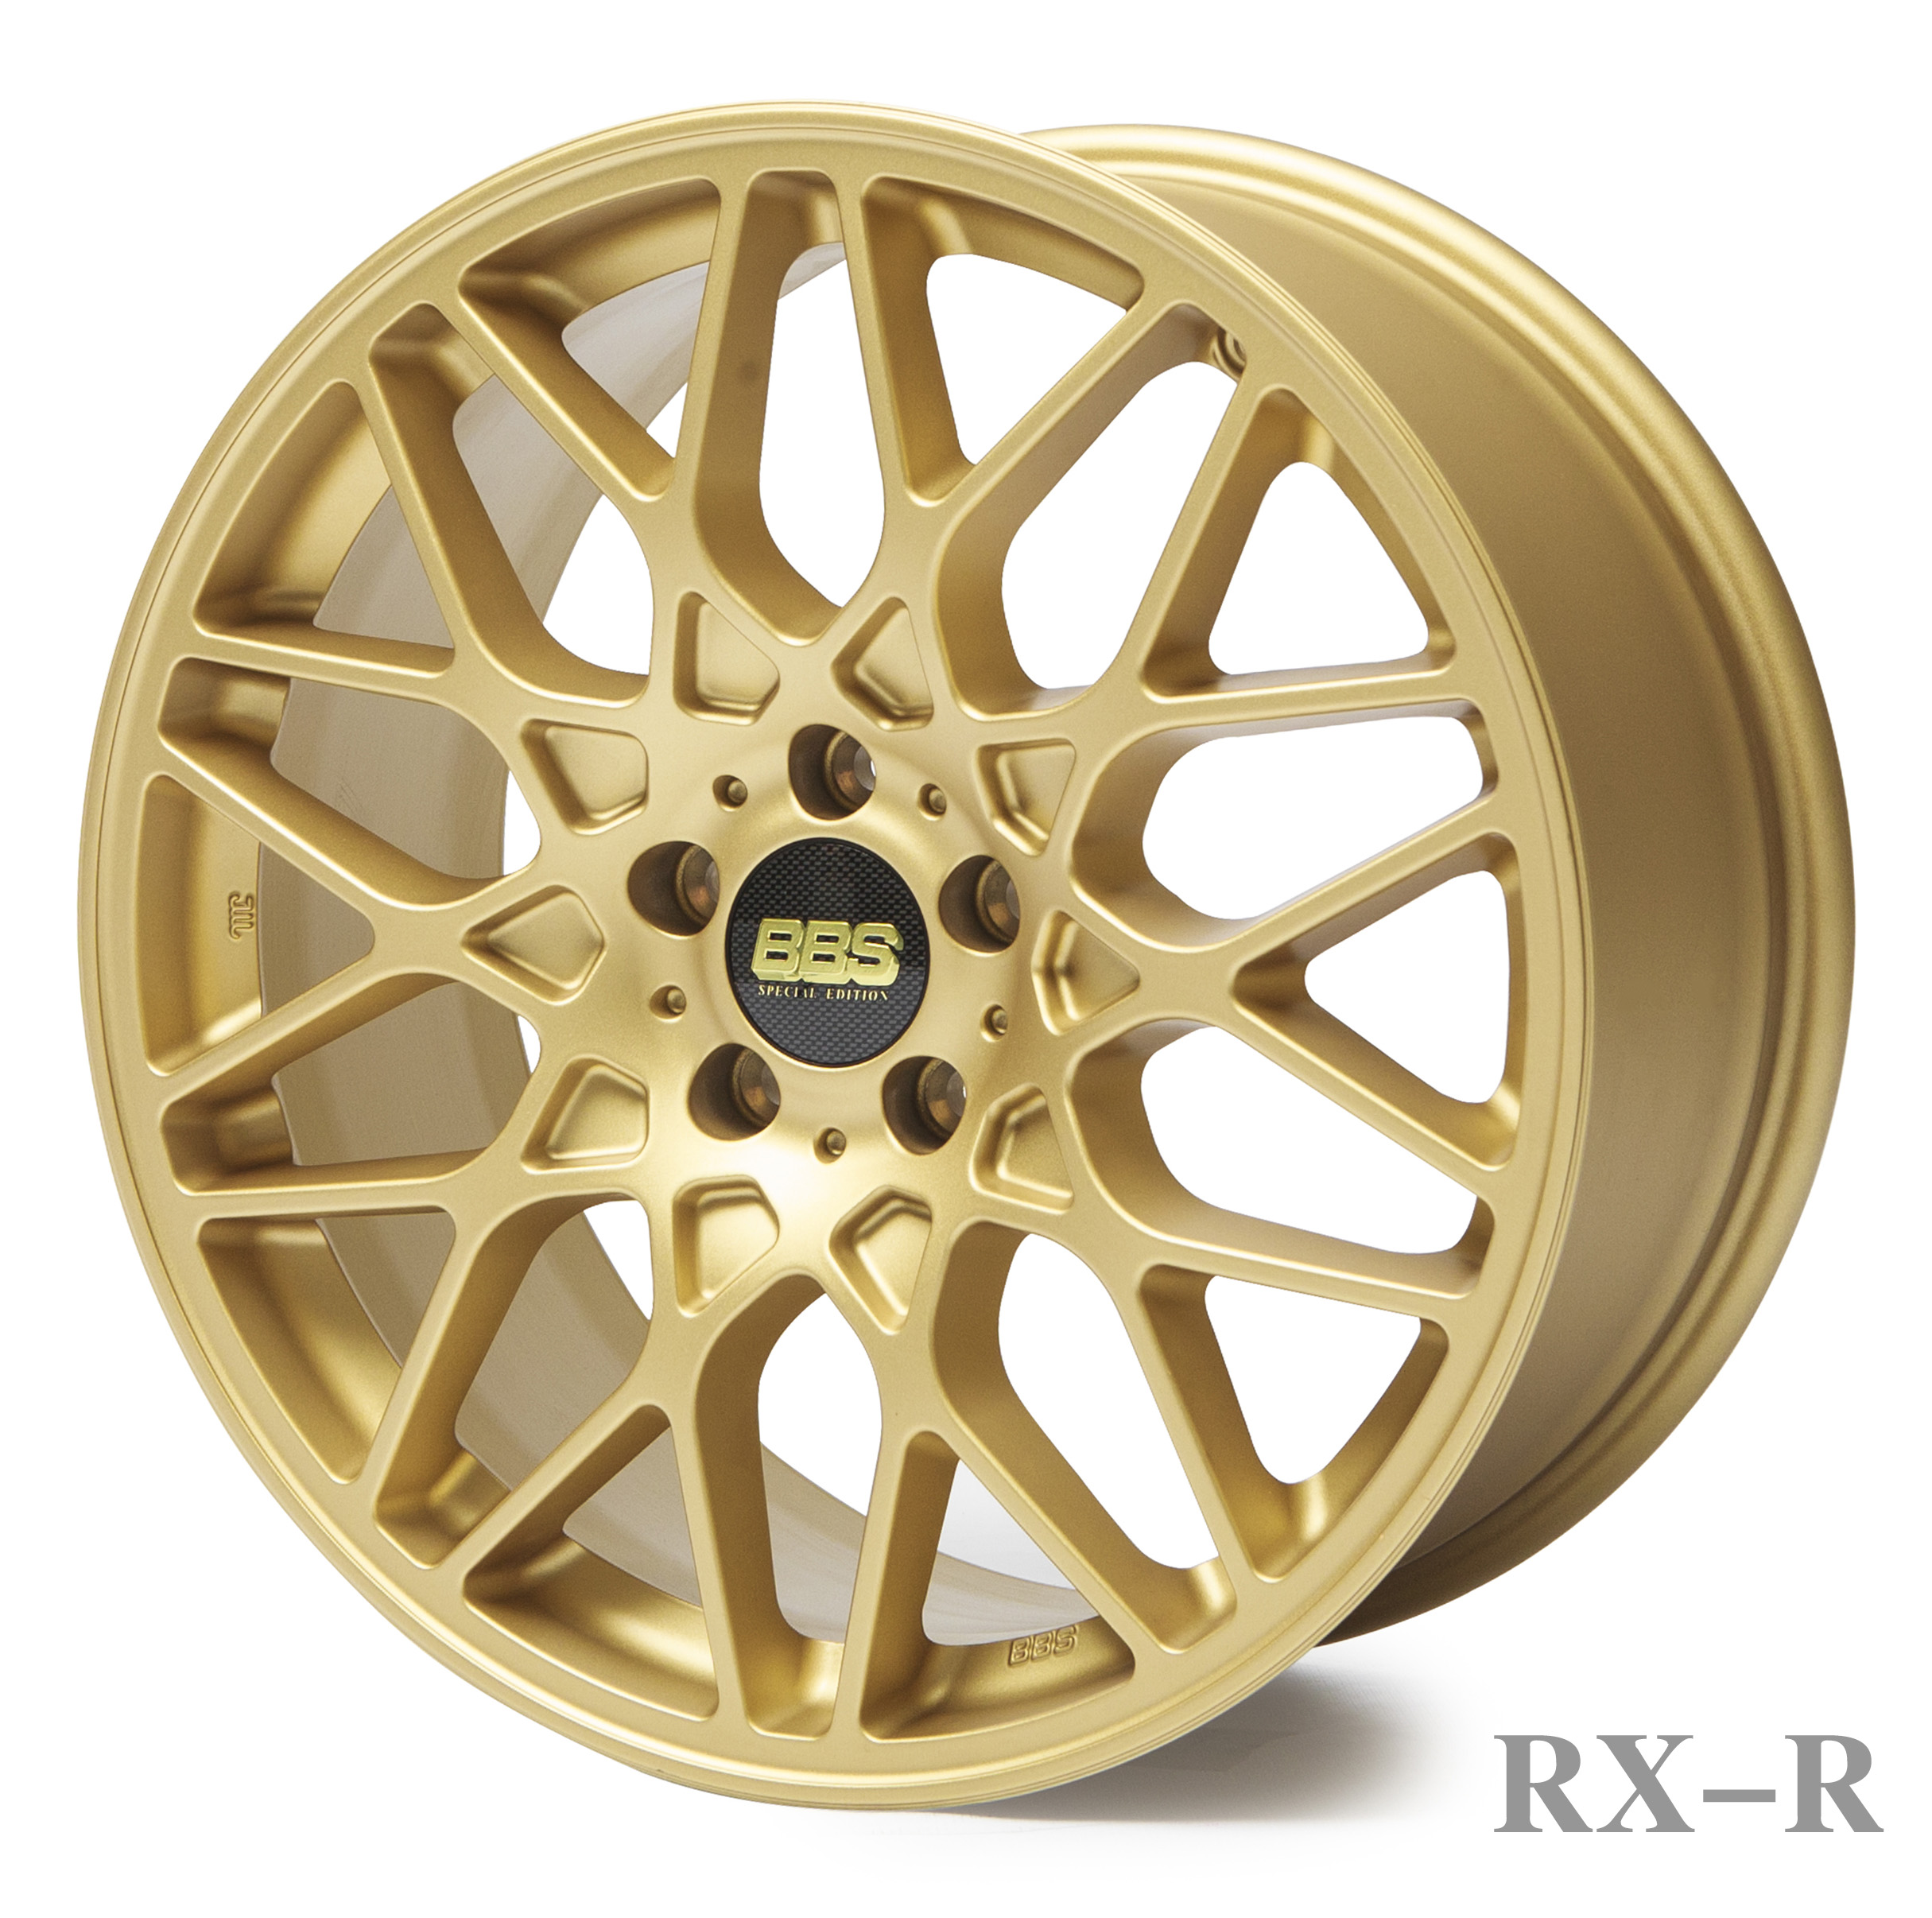 RX-R satin gold